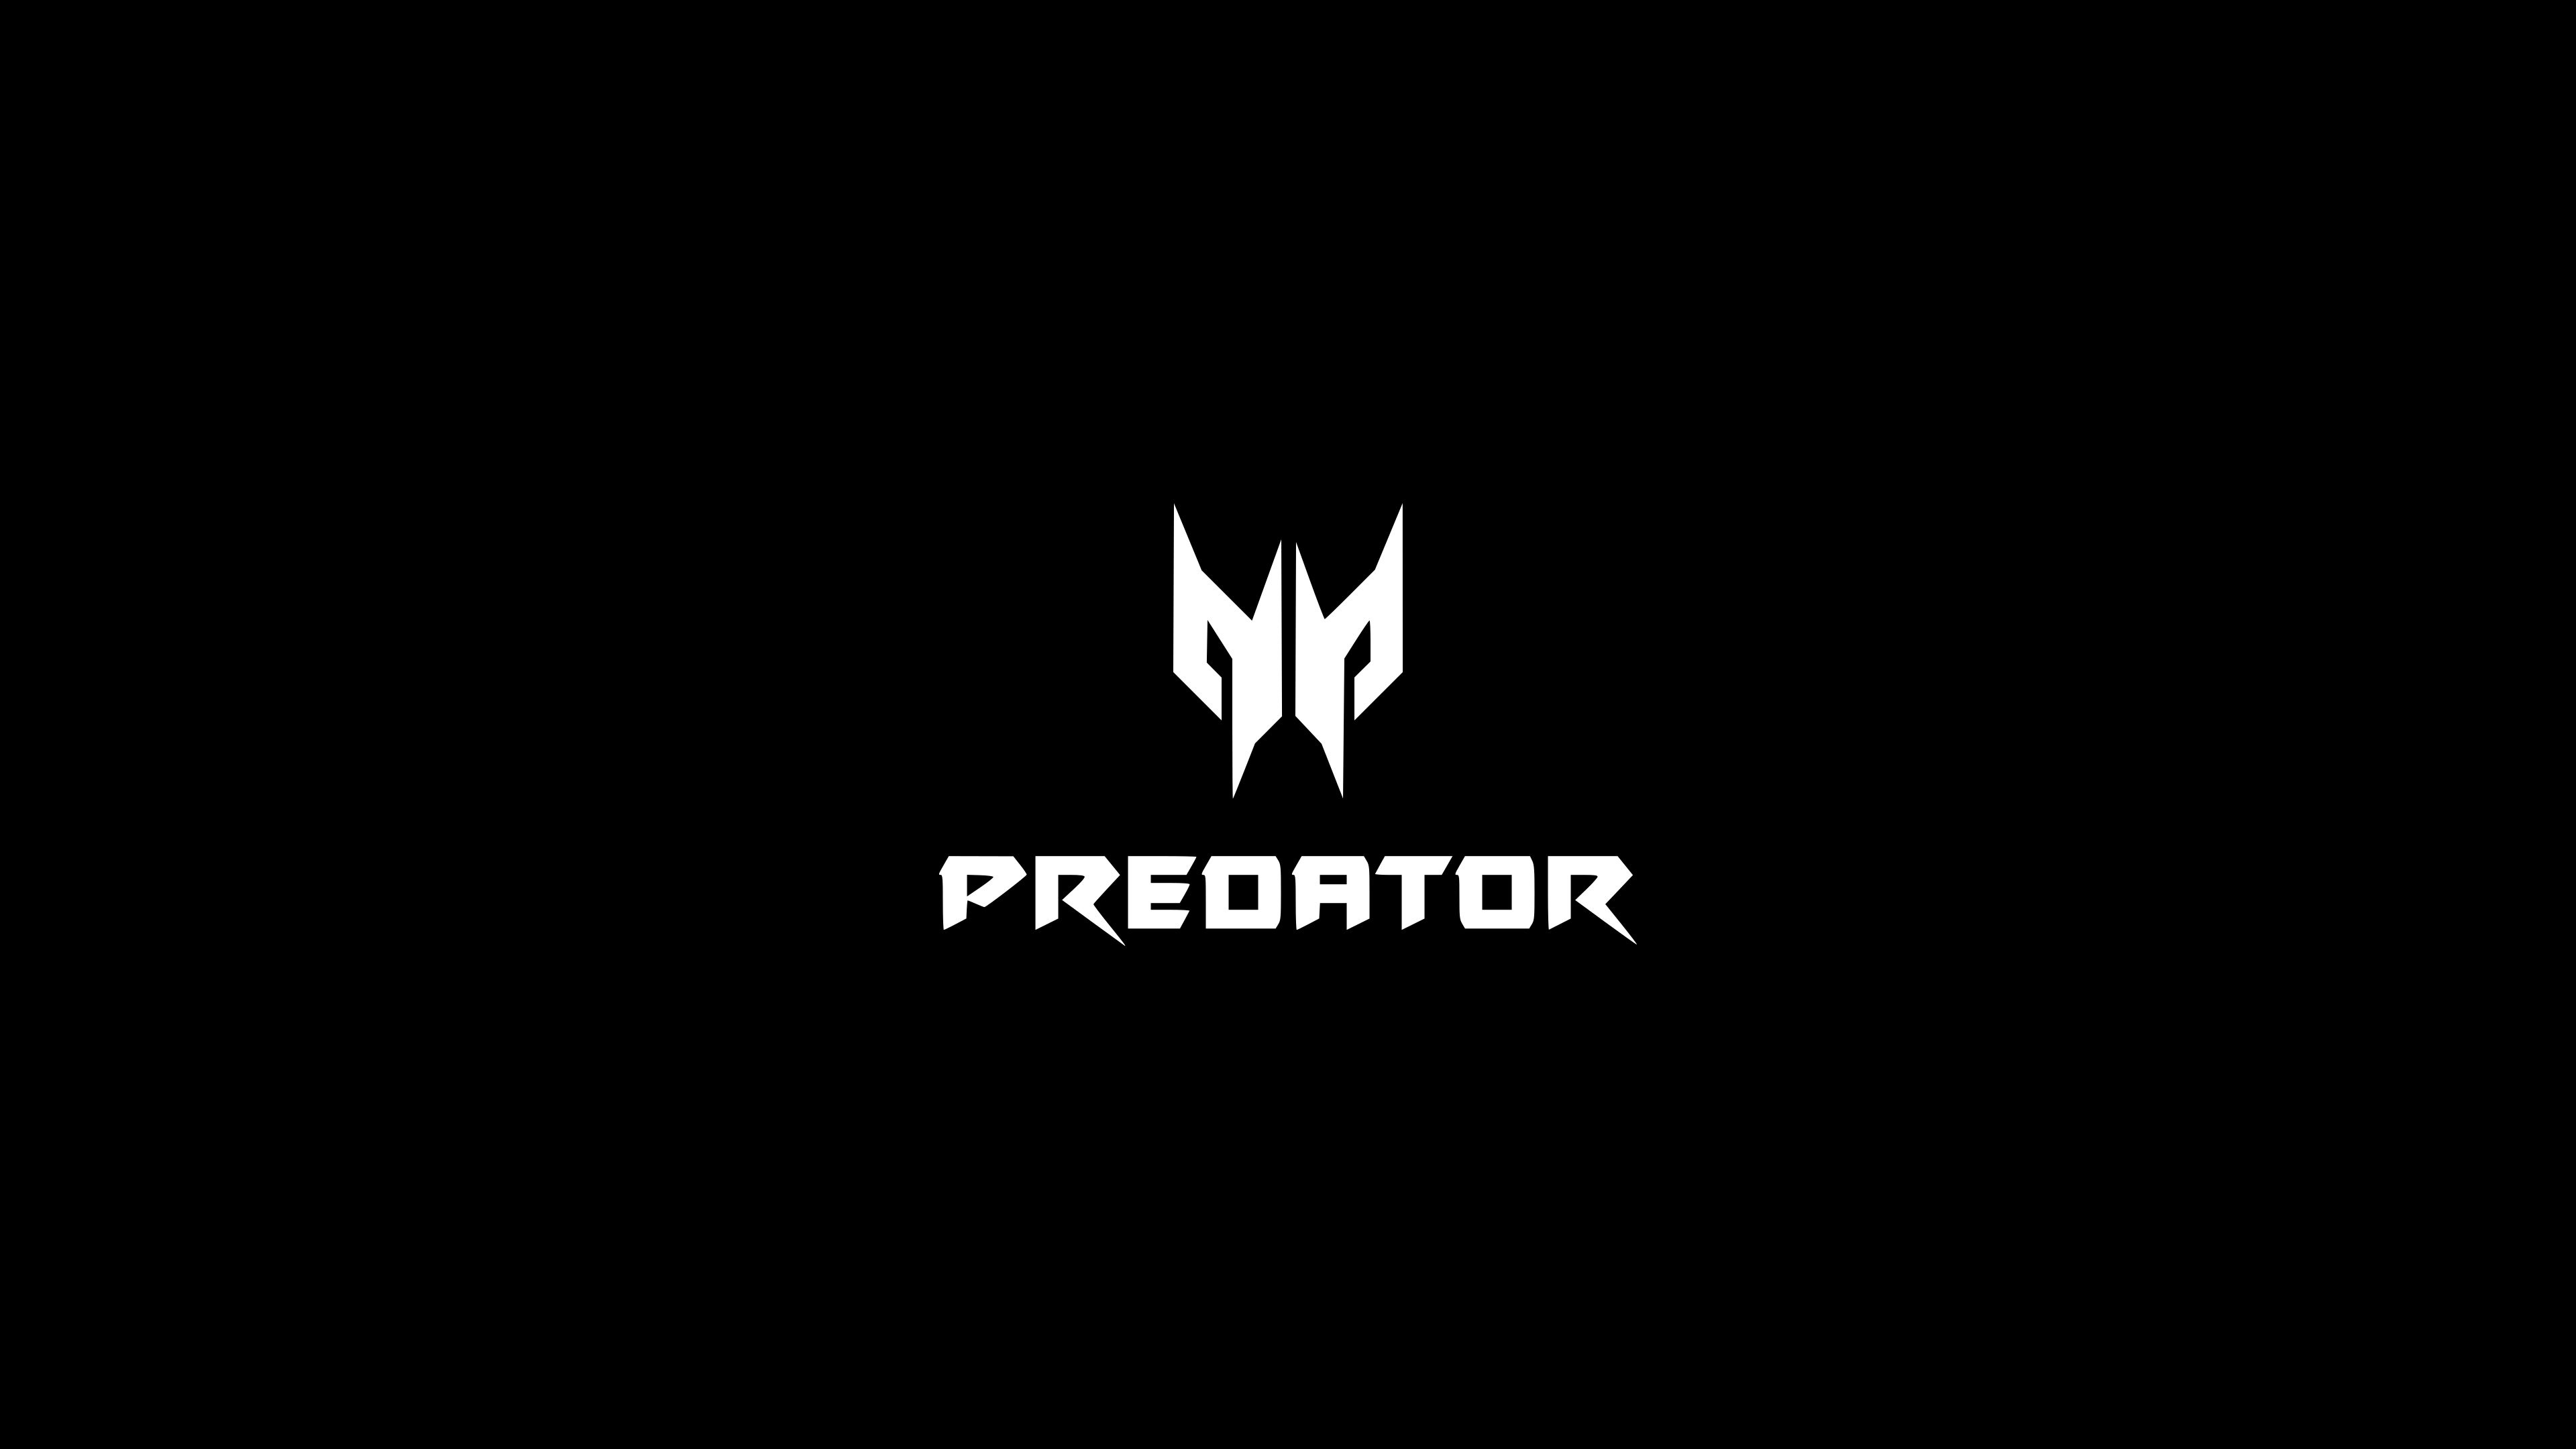 Acer Predator White Logo 3840x2160 Wallpaper